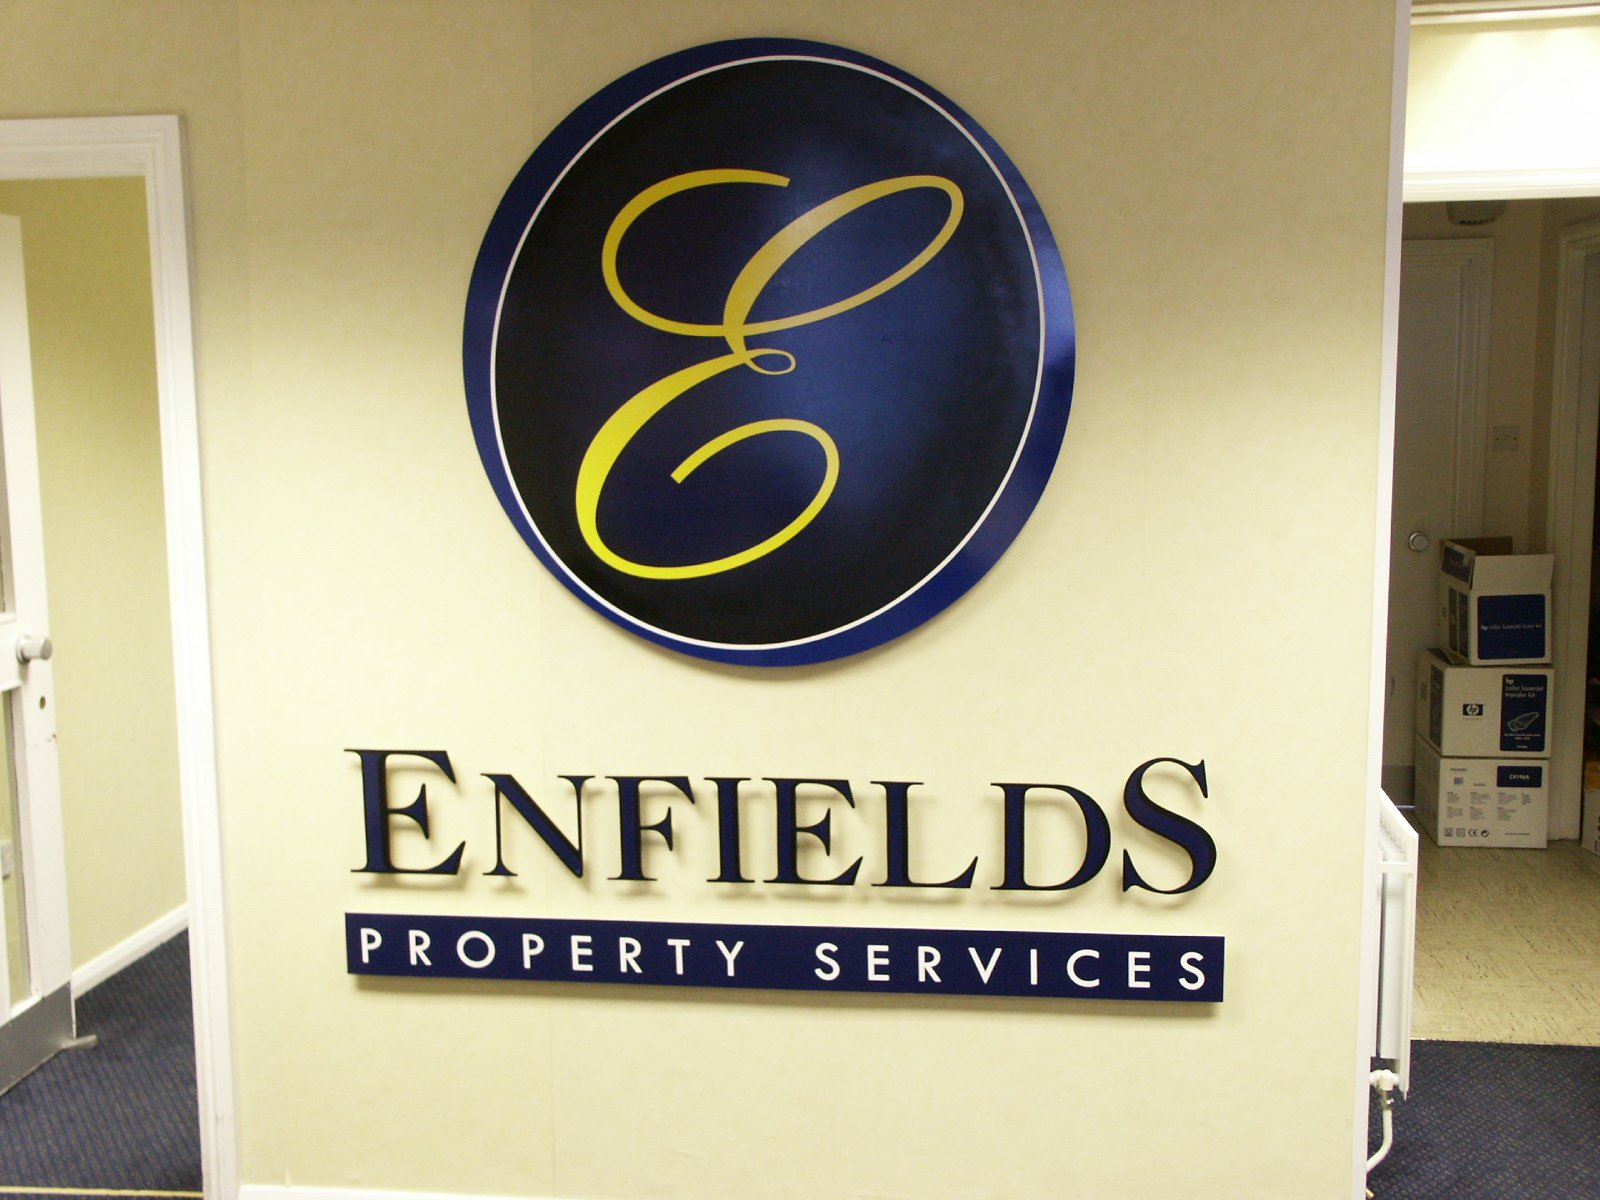 Enfields eastleigh 1